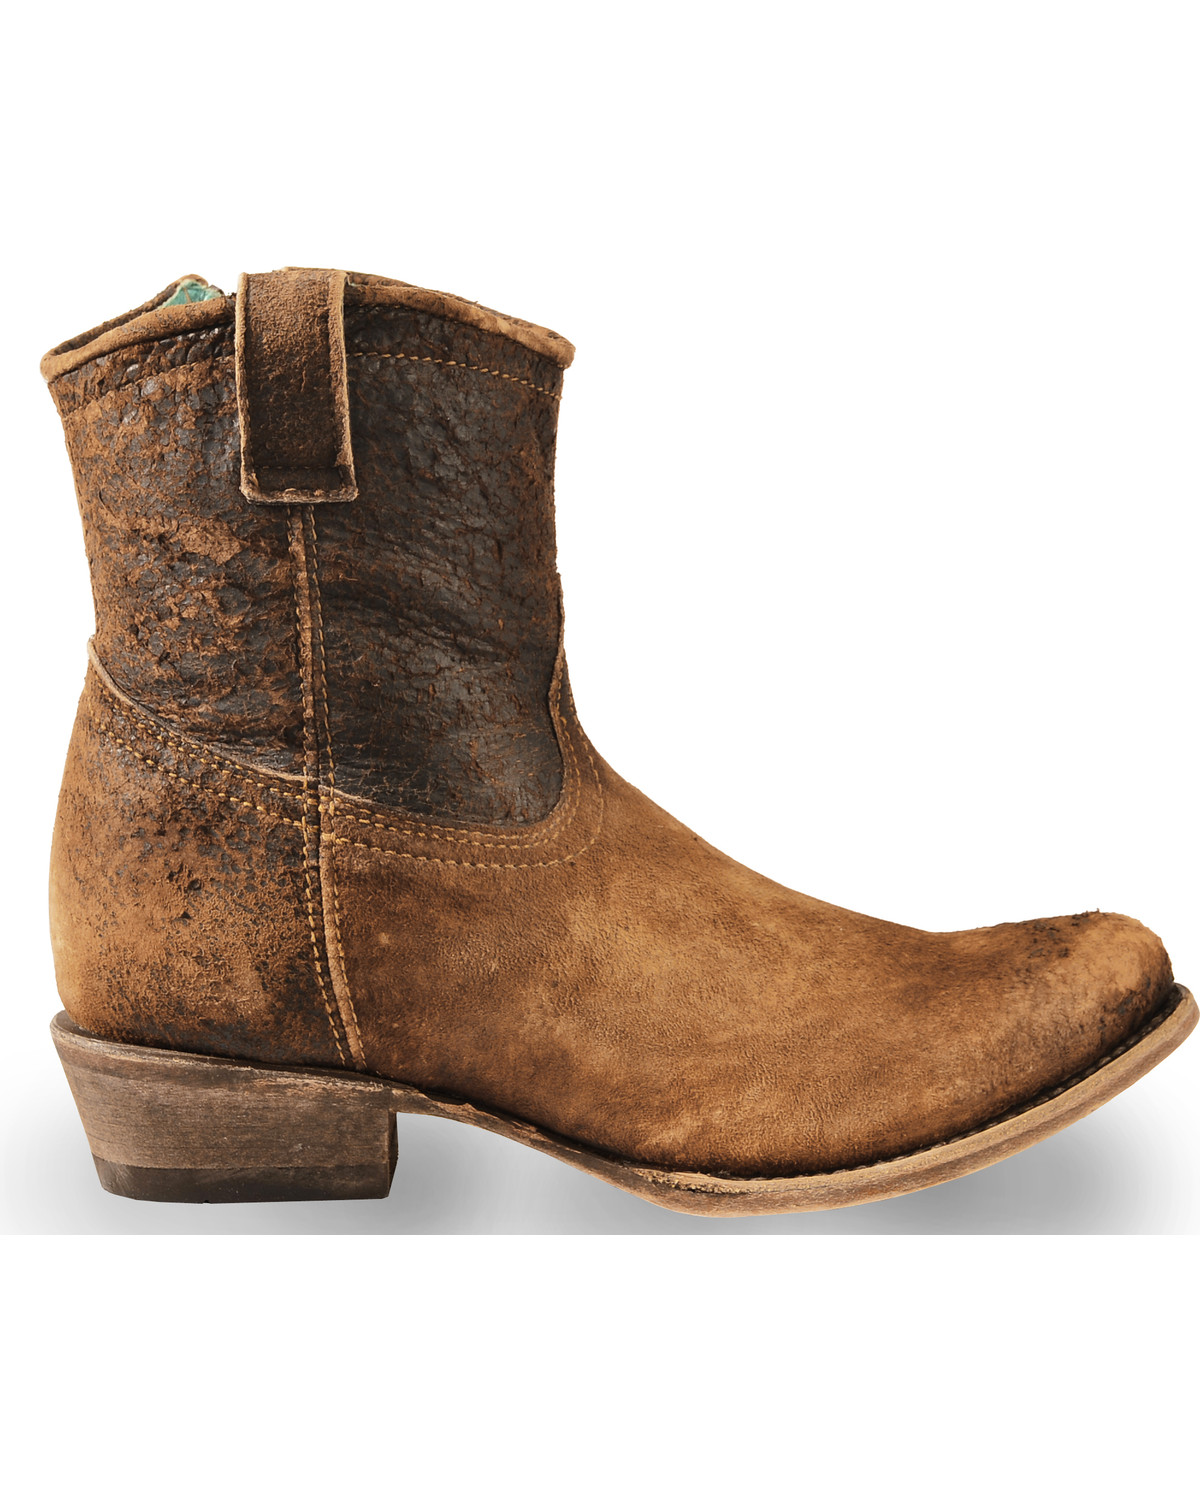 Perfect This Western Style Boot Has A Stylish Leather Upper And Durable Rounded Toe The Beautiful Stitching Detail On The Toe Sets This Short Boot Apart From The Rest An Inside Zipper Makes The Boot Easy To